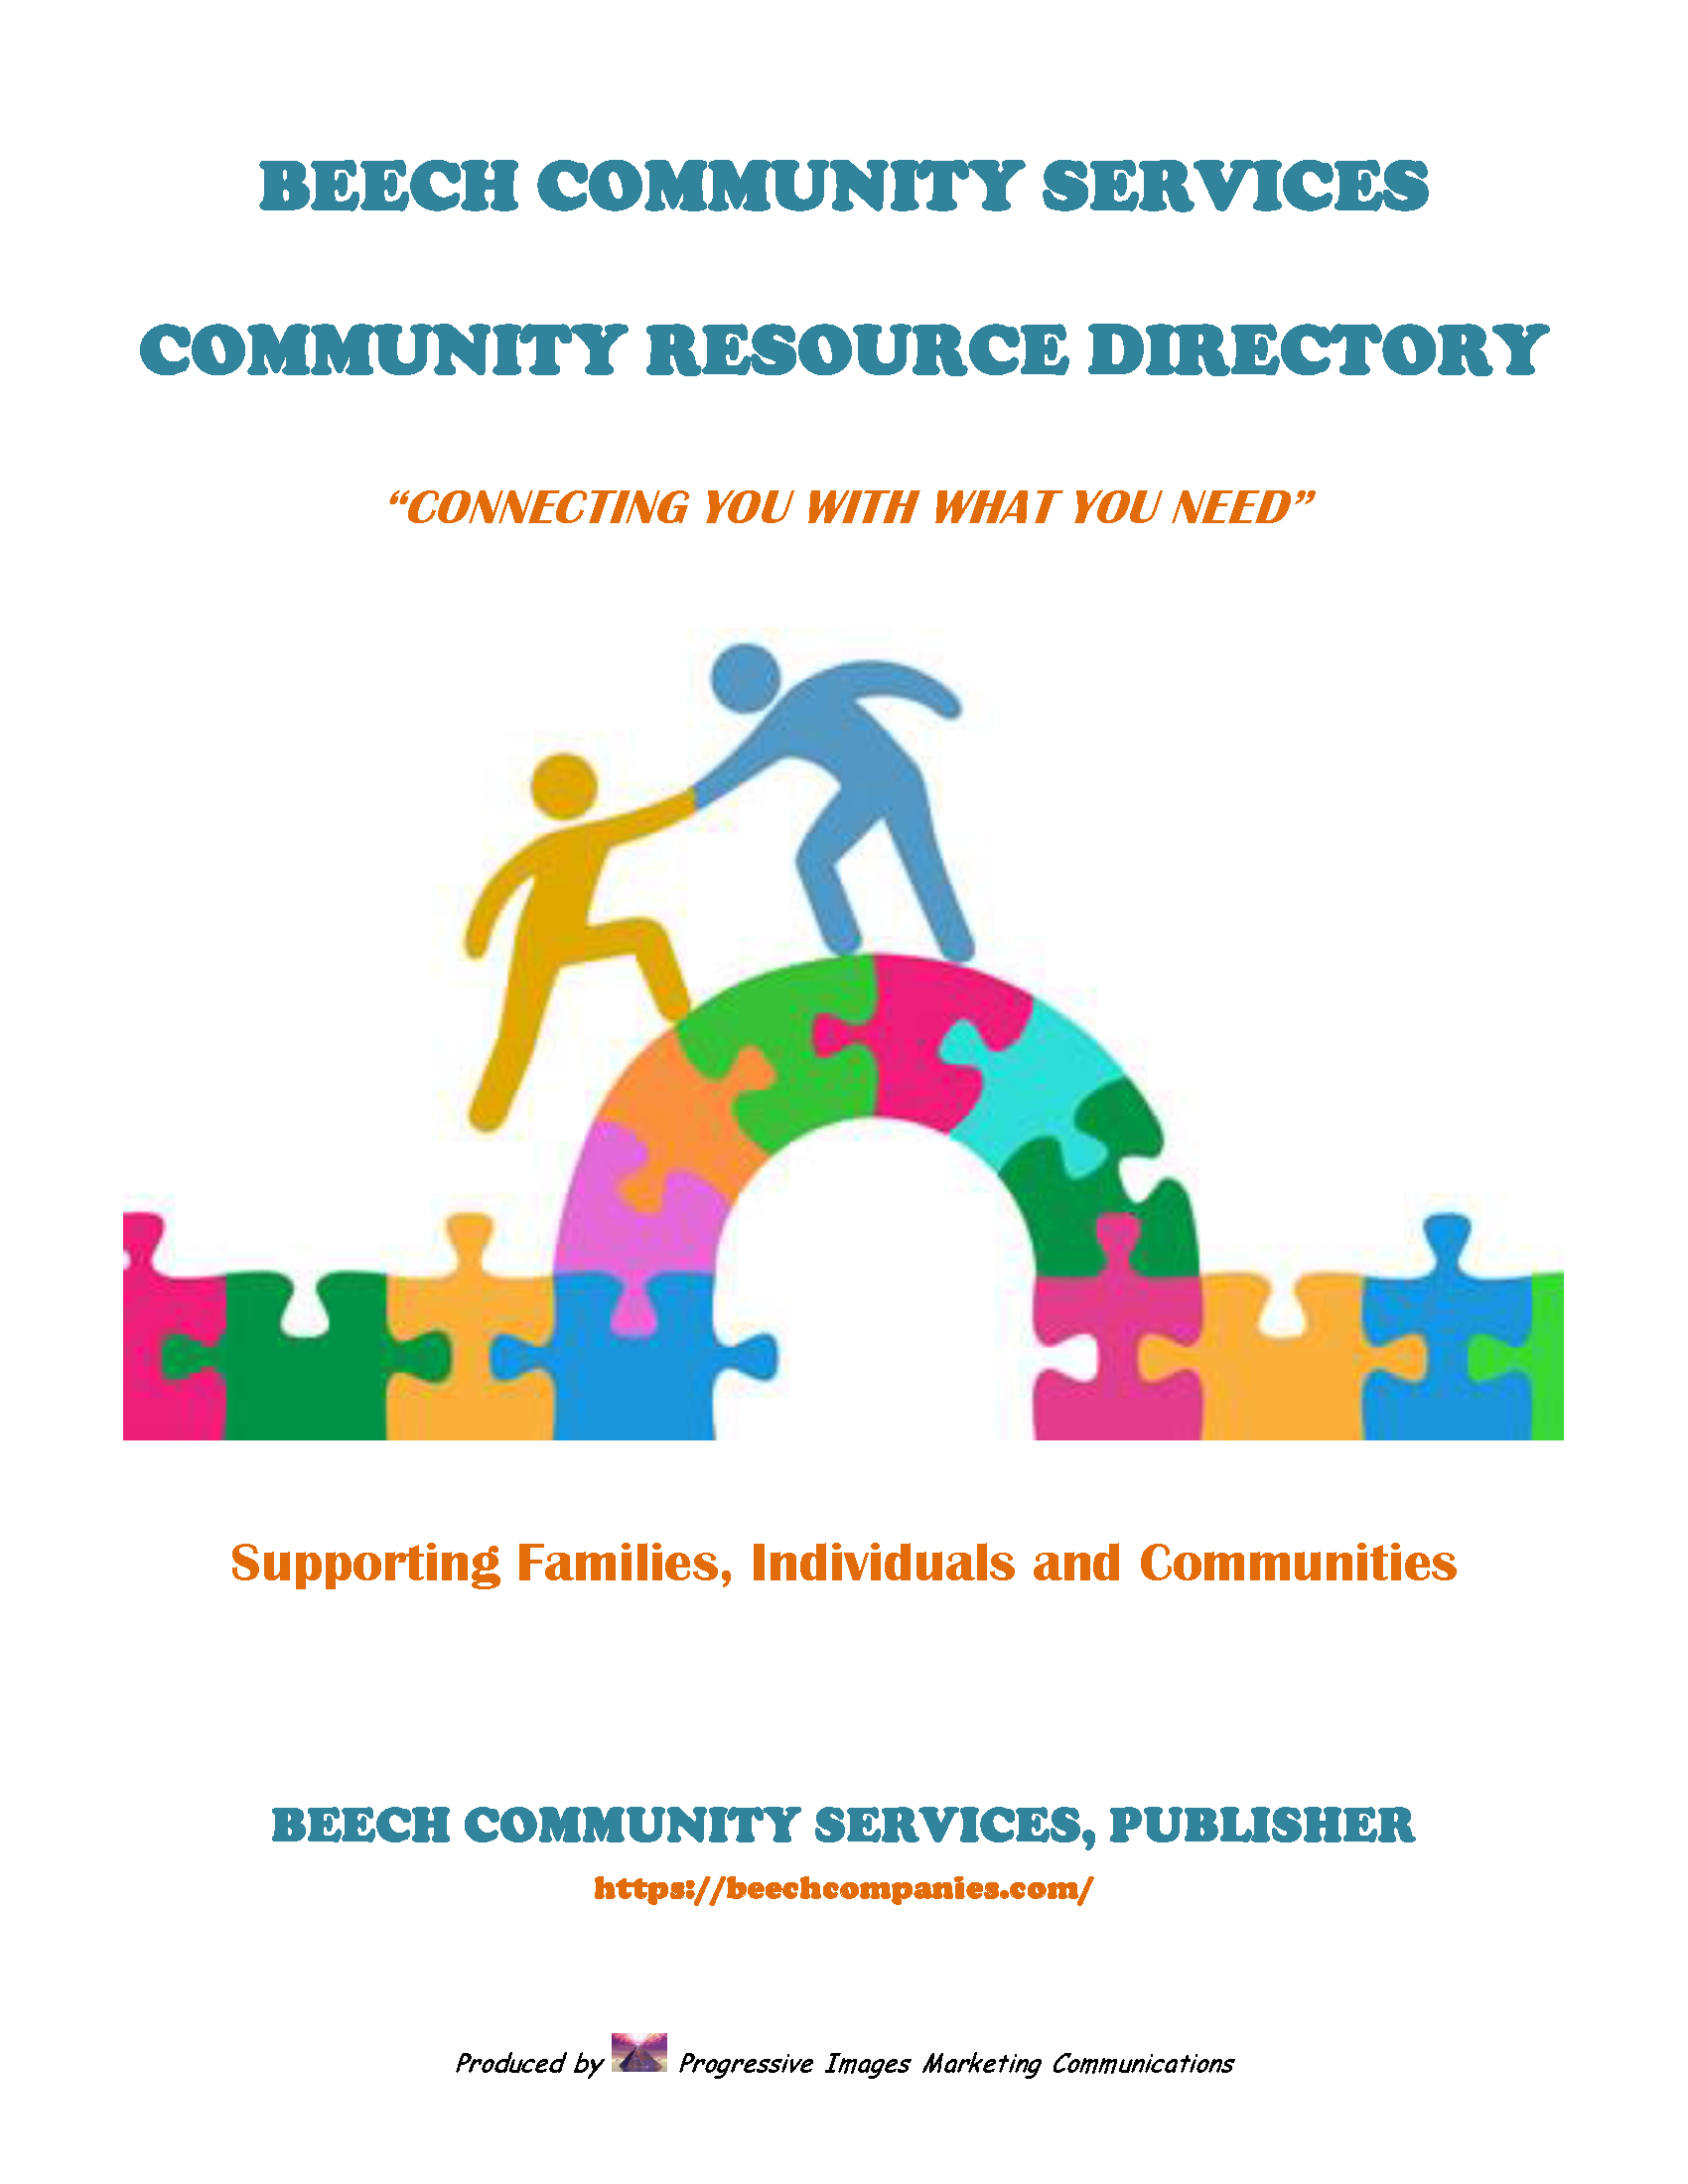 BEECH 2020 COMMUNITY RESOURCES DIRECTORY